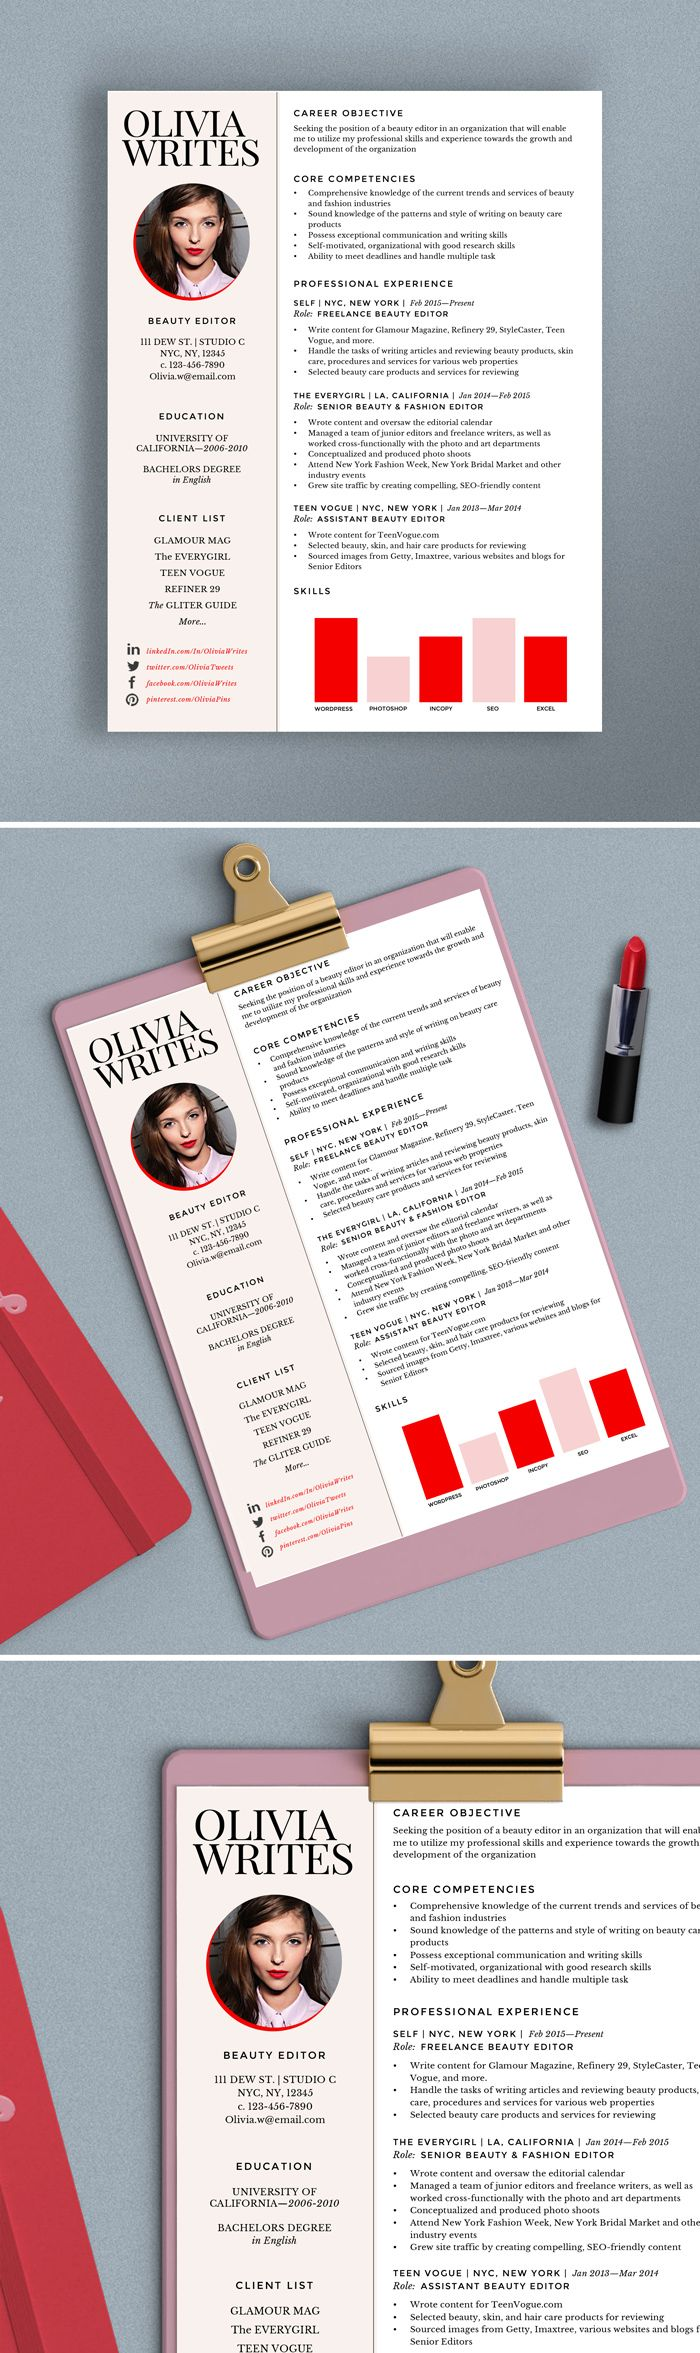 25 Unique Professional Resume Writers Ideas On Pinterest Qs